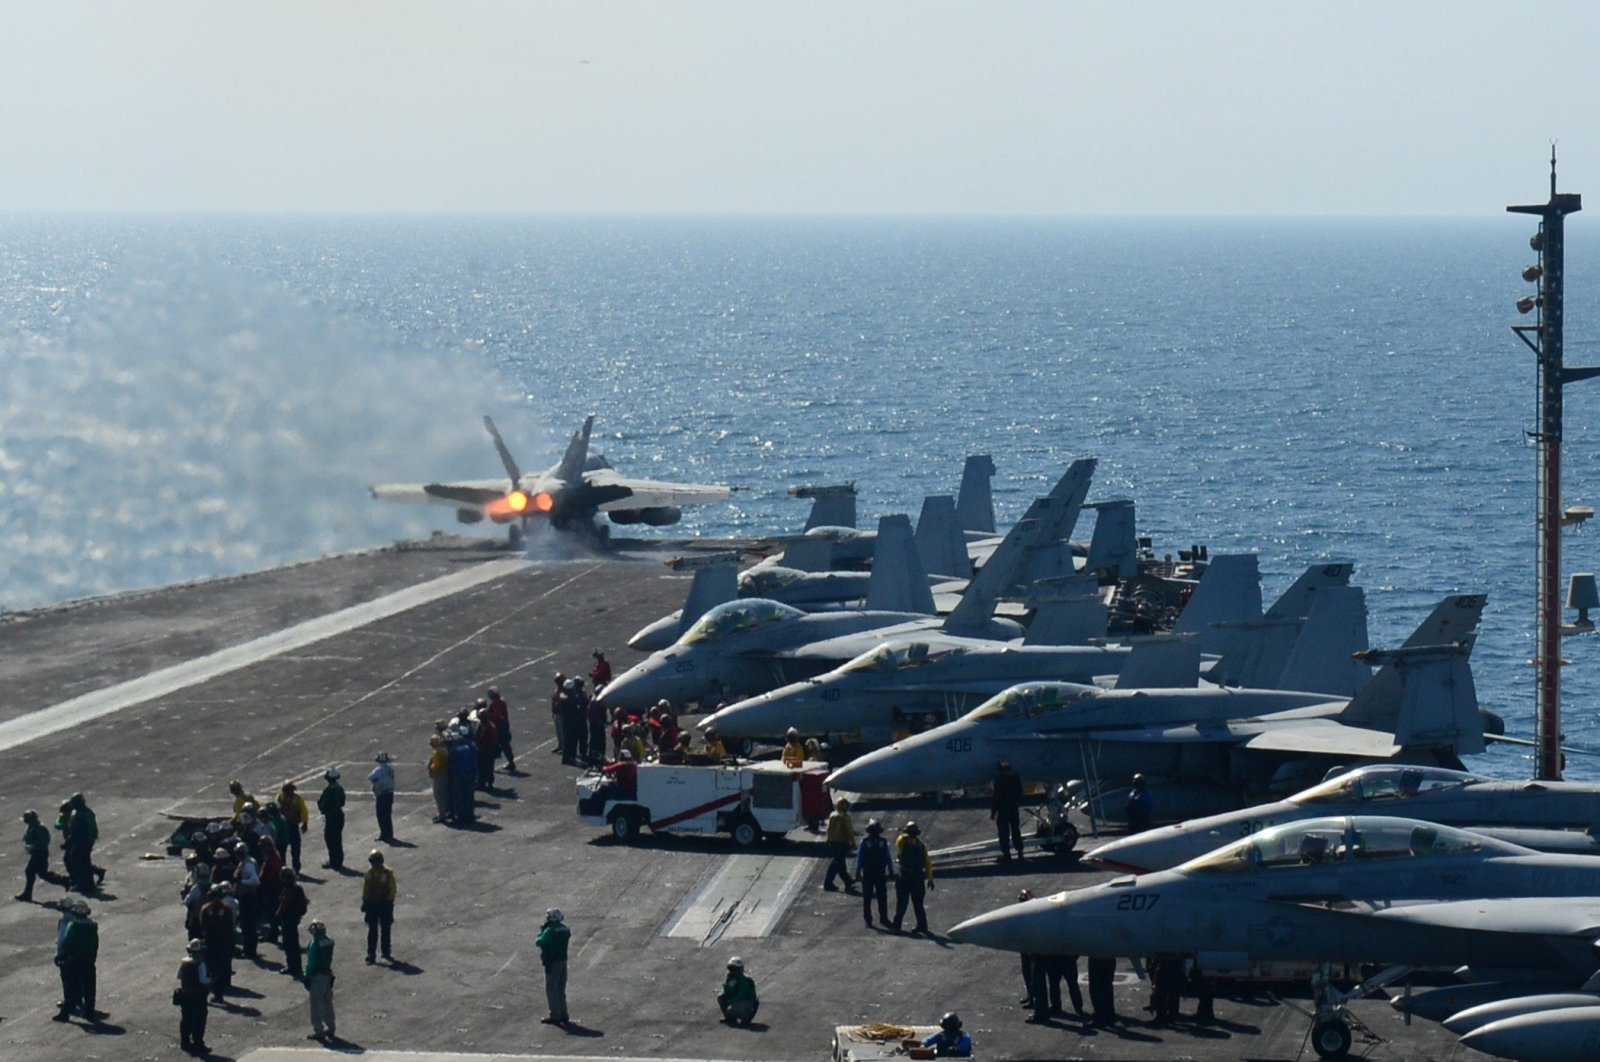 In this image released by the US Navy launches off the flight deck of the aircraft carrier USS George H.W. Bush during flight operations in the Arabian Gulf, June 17, 2014. (AFP Photo)